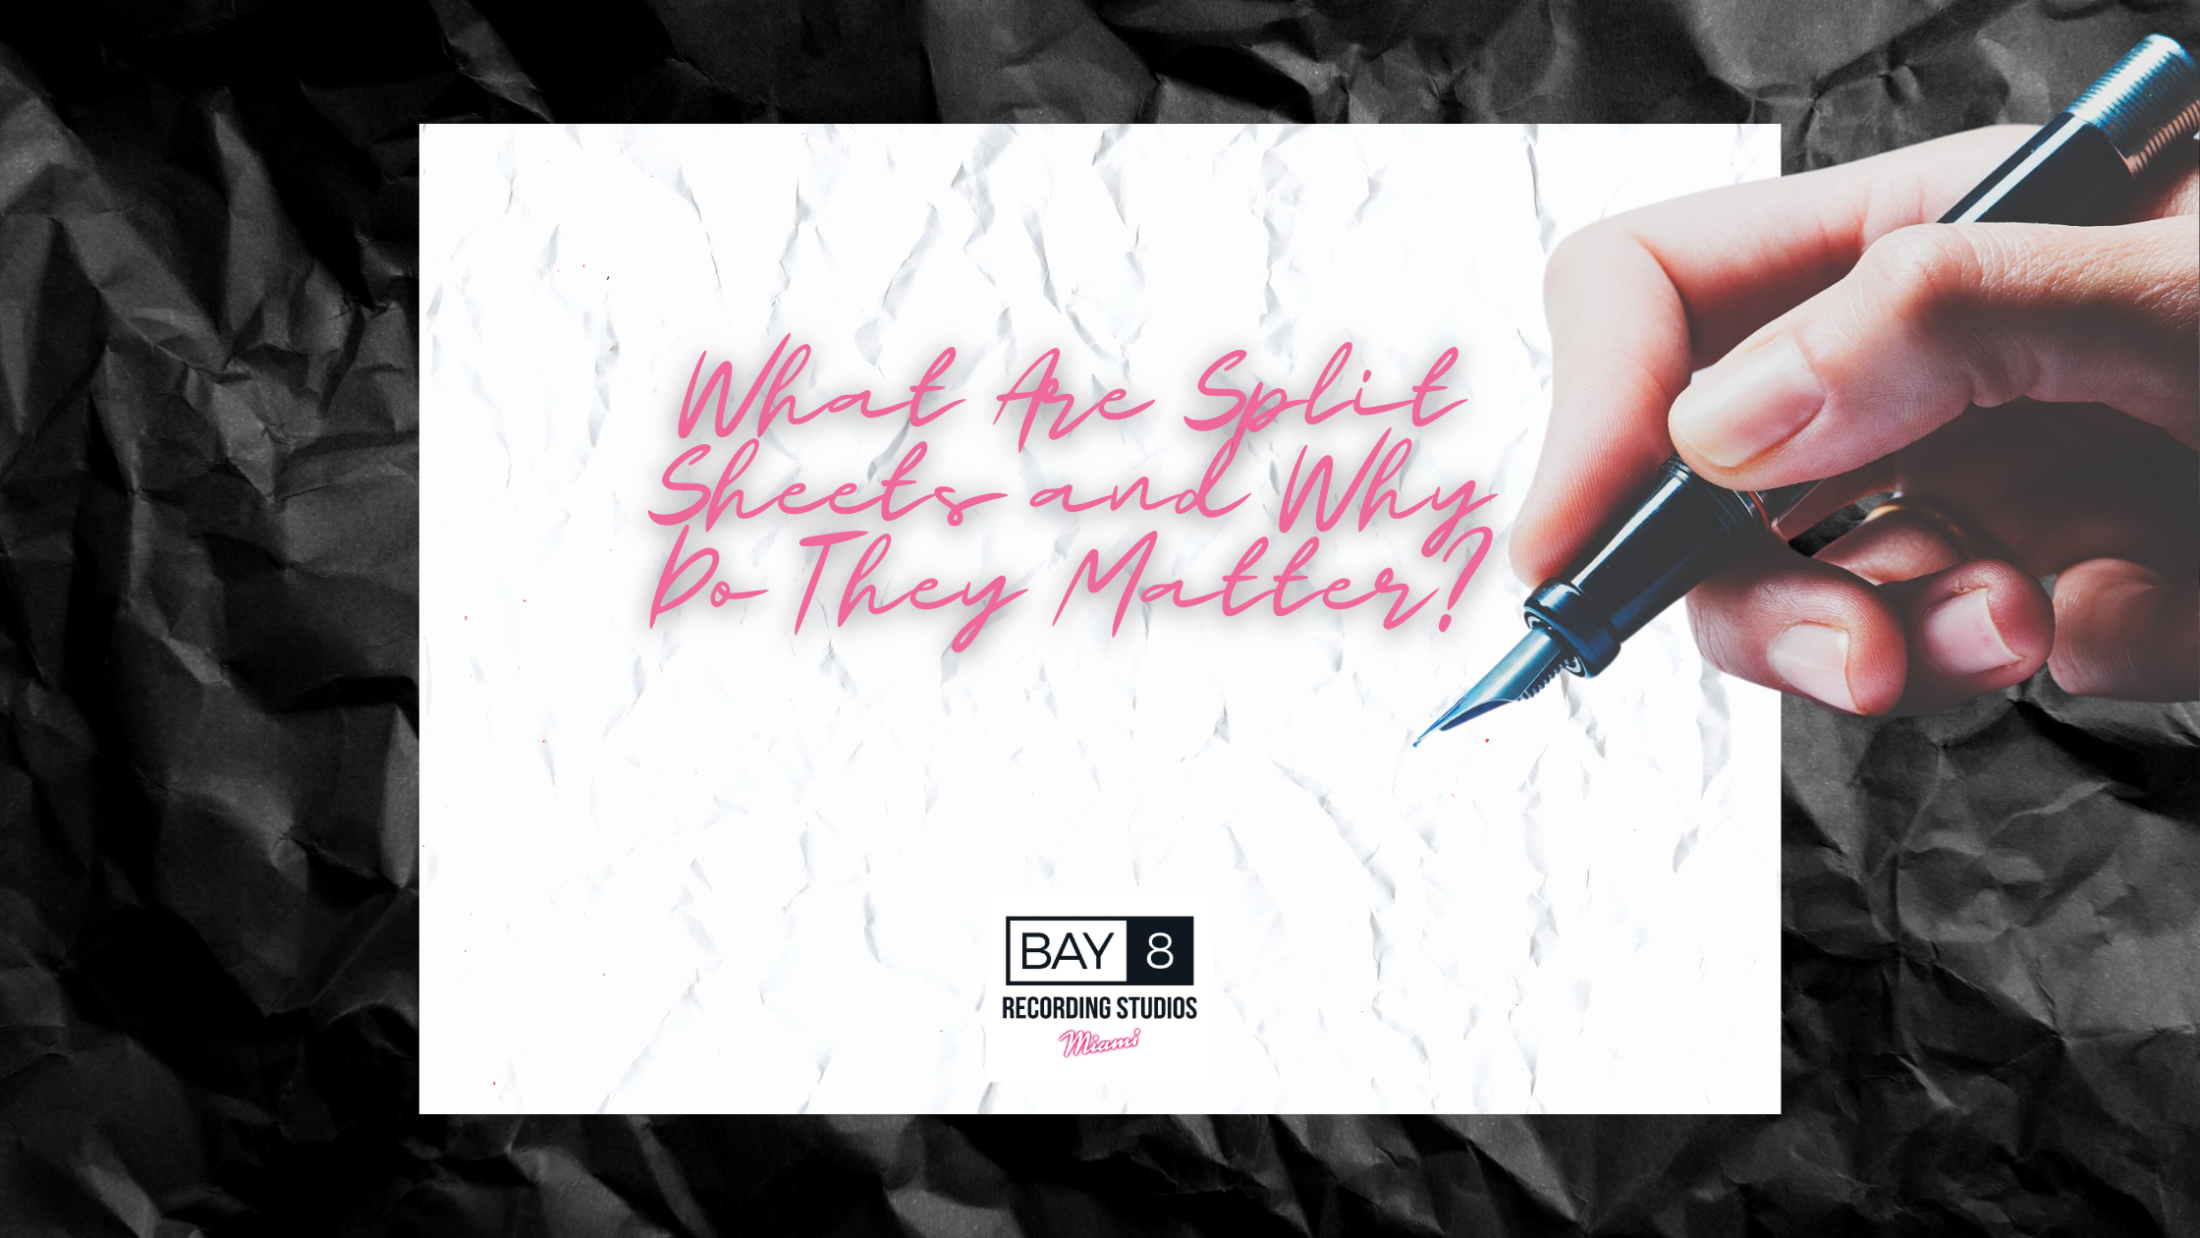 Bay Eight Recording Studios What Are Split Sheets and Why Do They Matter? 2